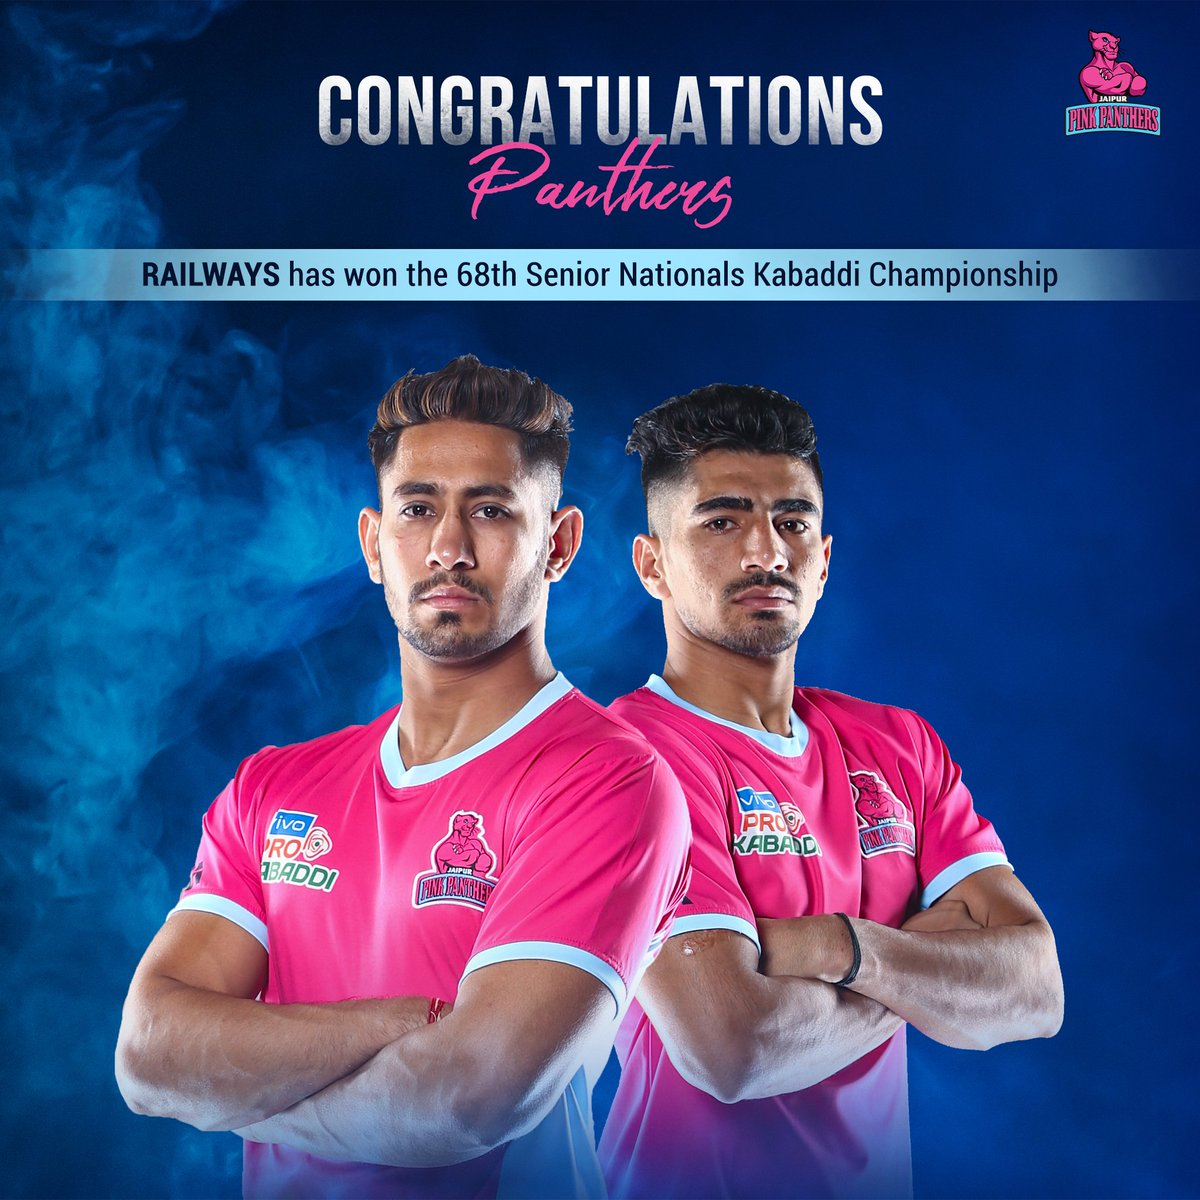 Railways has won the 68th Senior Nationals Kabaddi Championship. Congratulations to @nitinrkabaddi & @Sandeep_Dhull_4 for assisting their team to glory! 👏🏻   #PantherSquad #JaiHanuman #TopCats #JaipurPinkPanthers #JPP #Jaipur #vivoprokabaddi